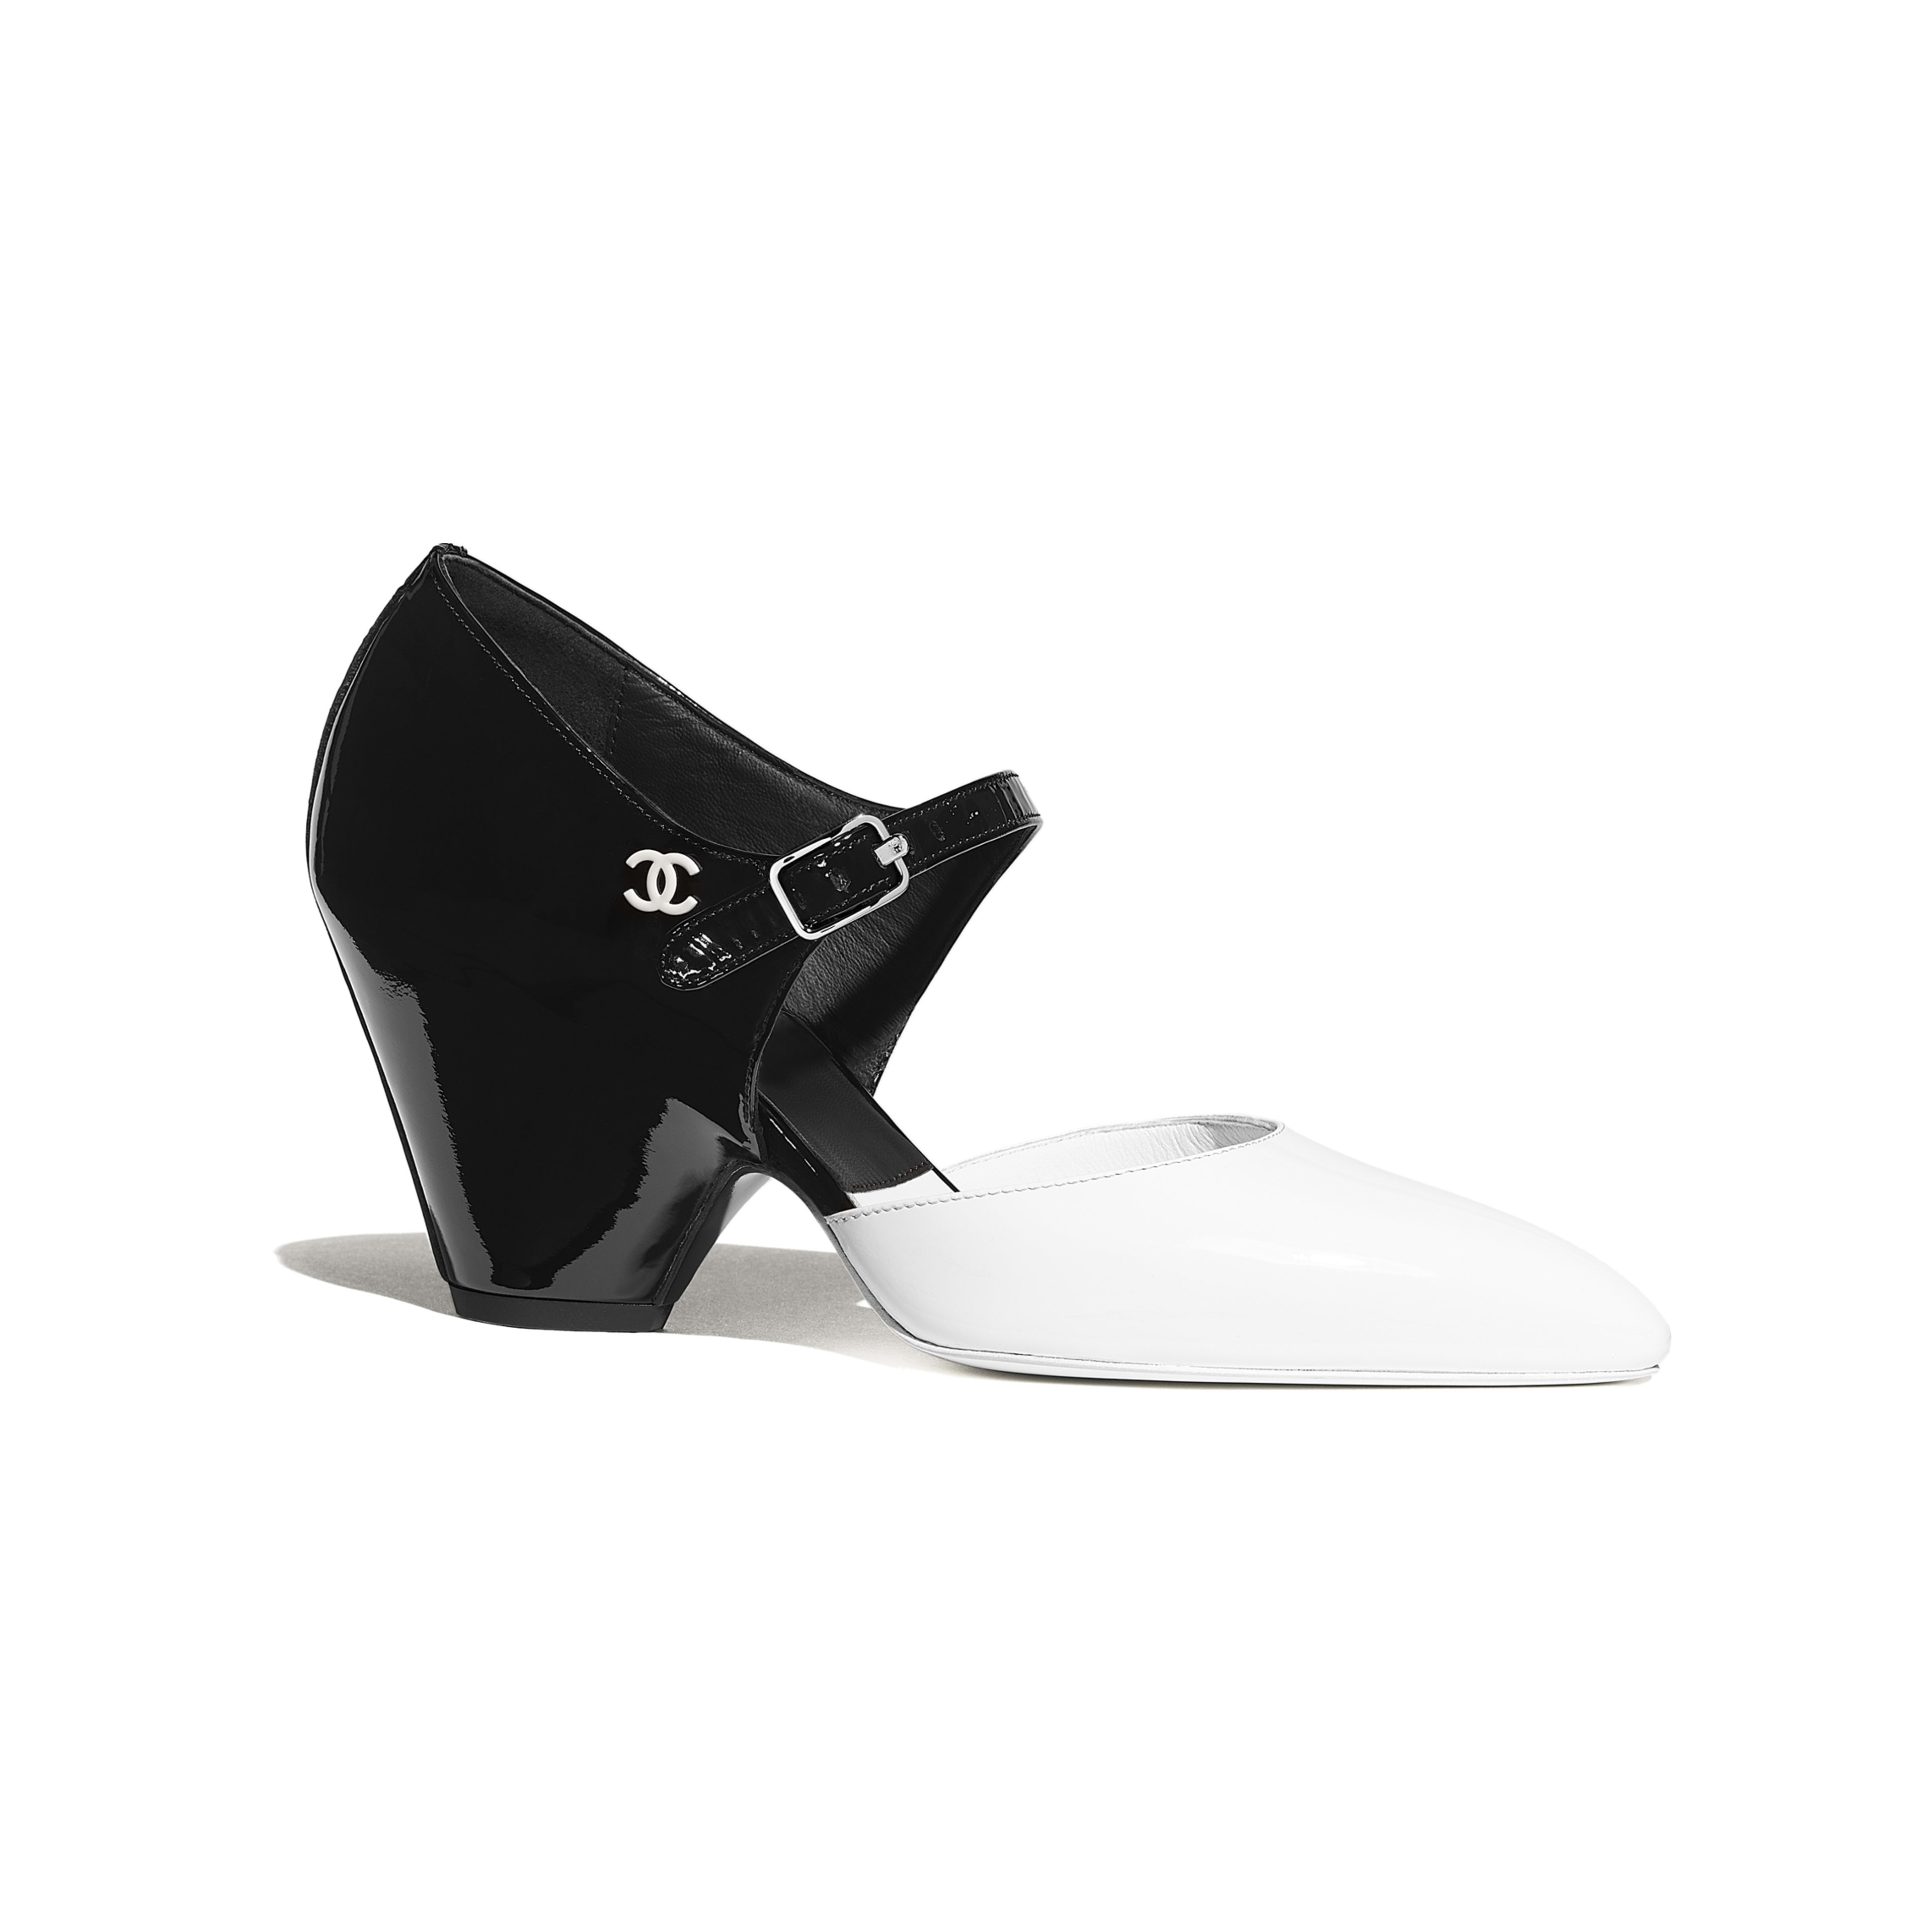 Pumps - White & Black - Patent Calfskin - Default view - see full sized version